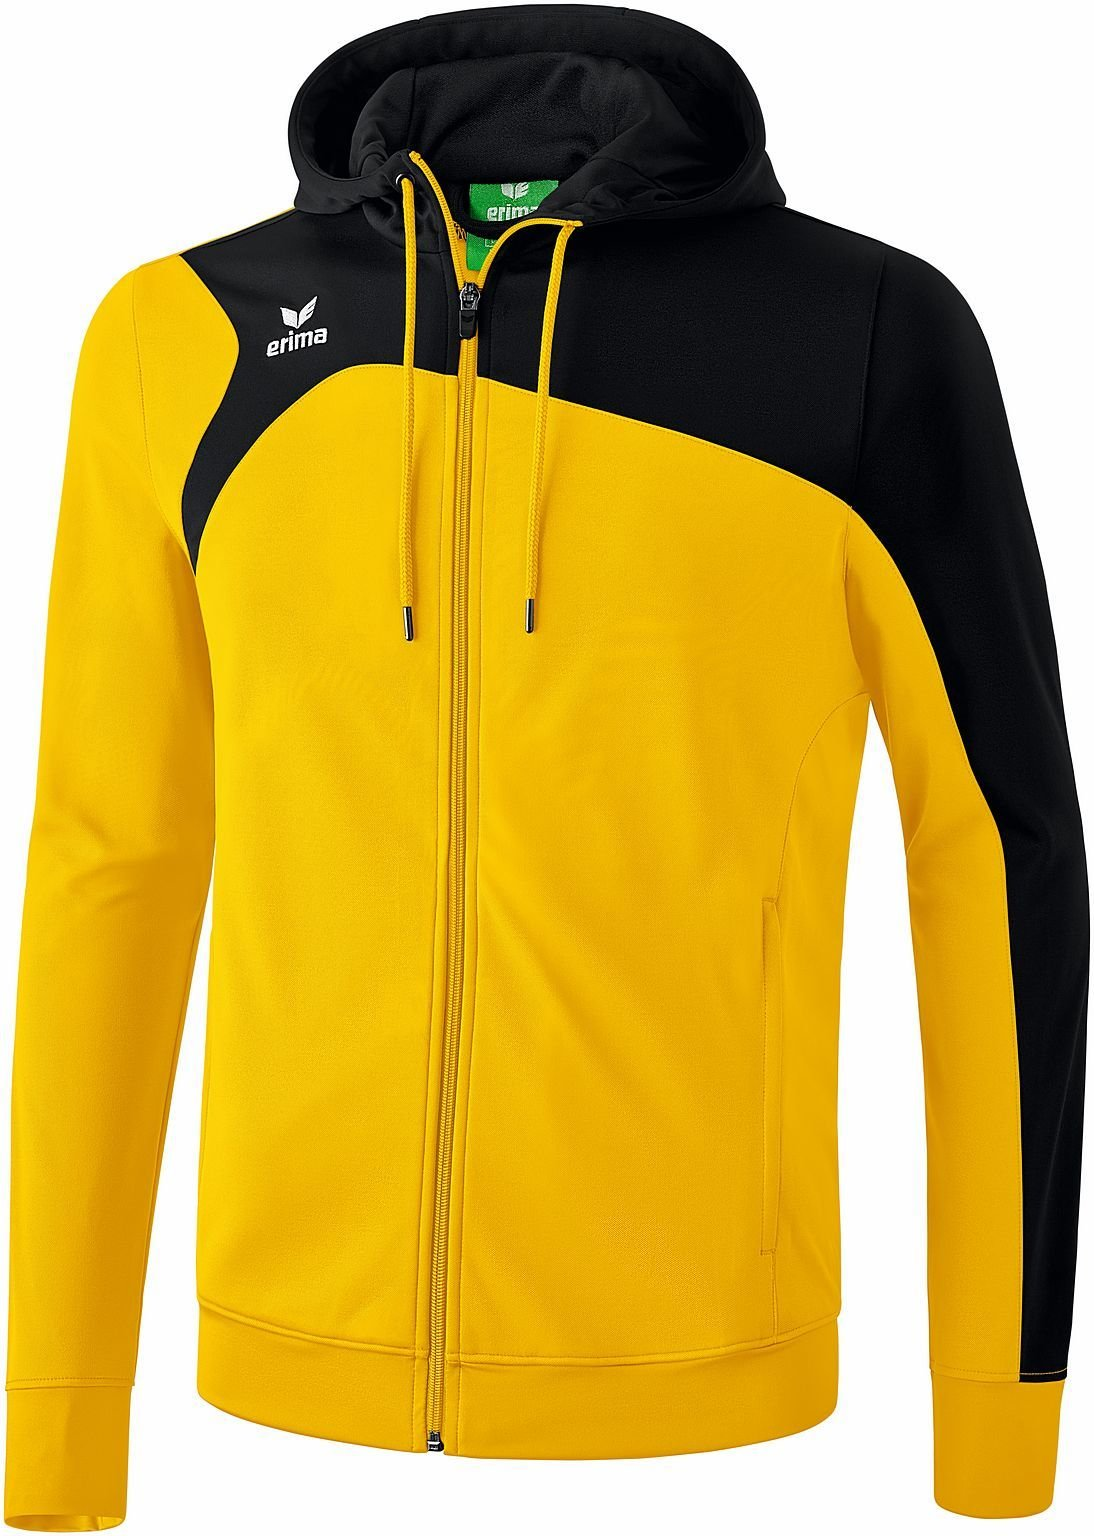 Club 1900 2.0 Trainingsjacke Kapuze